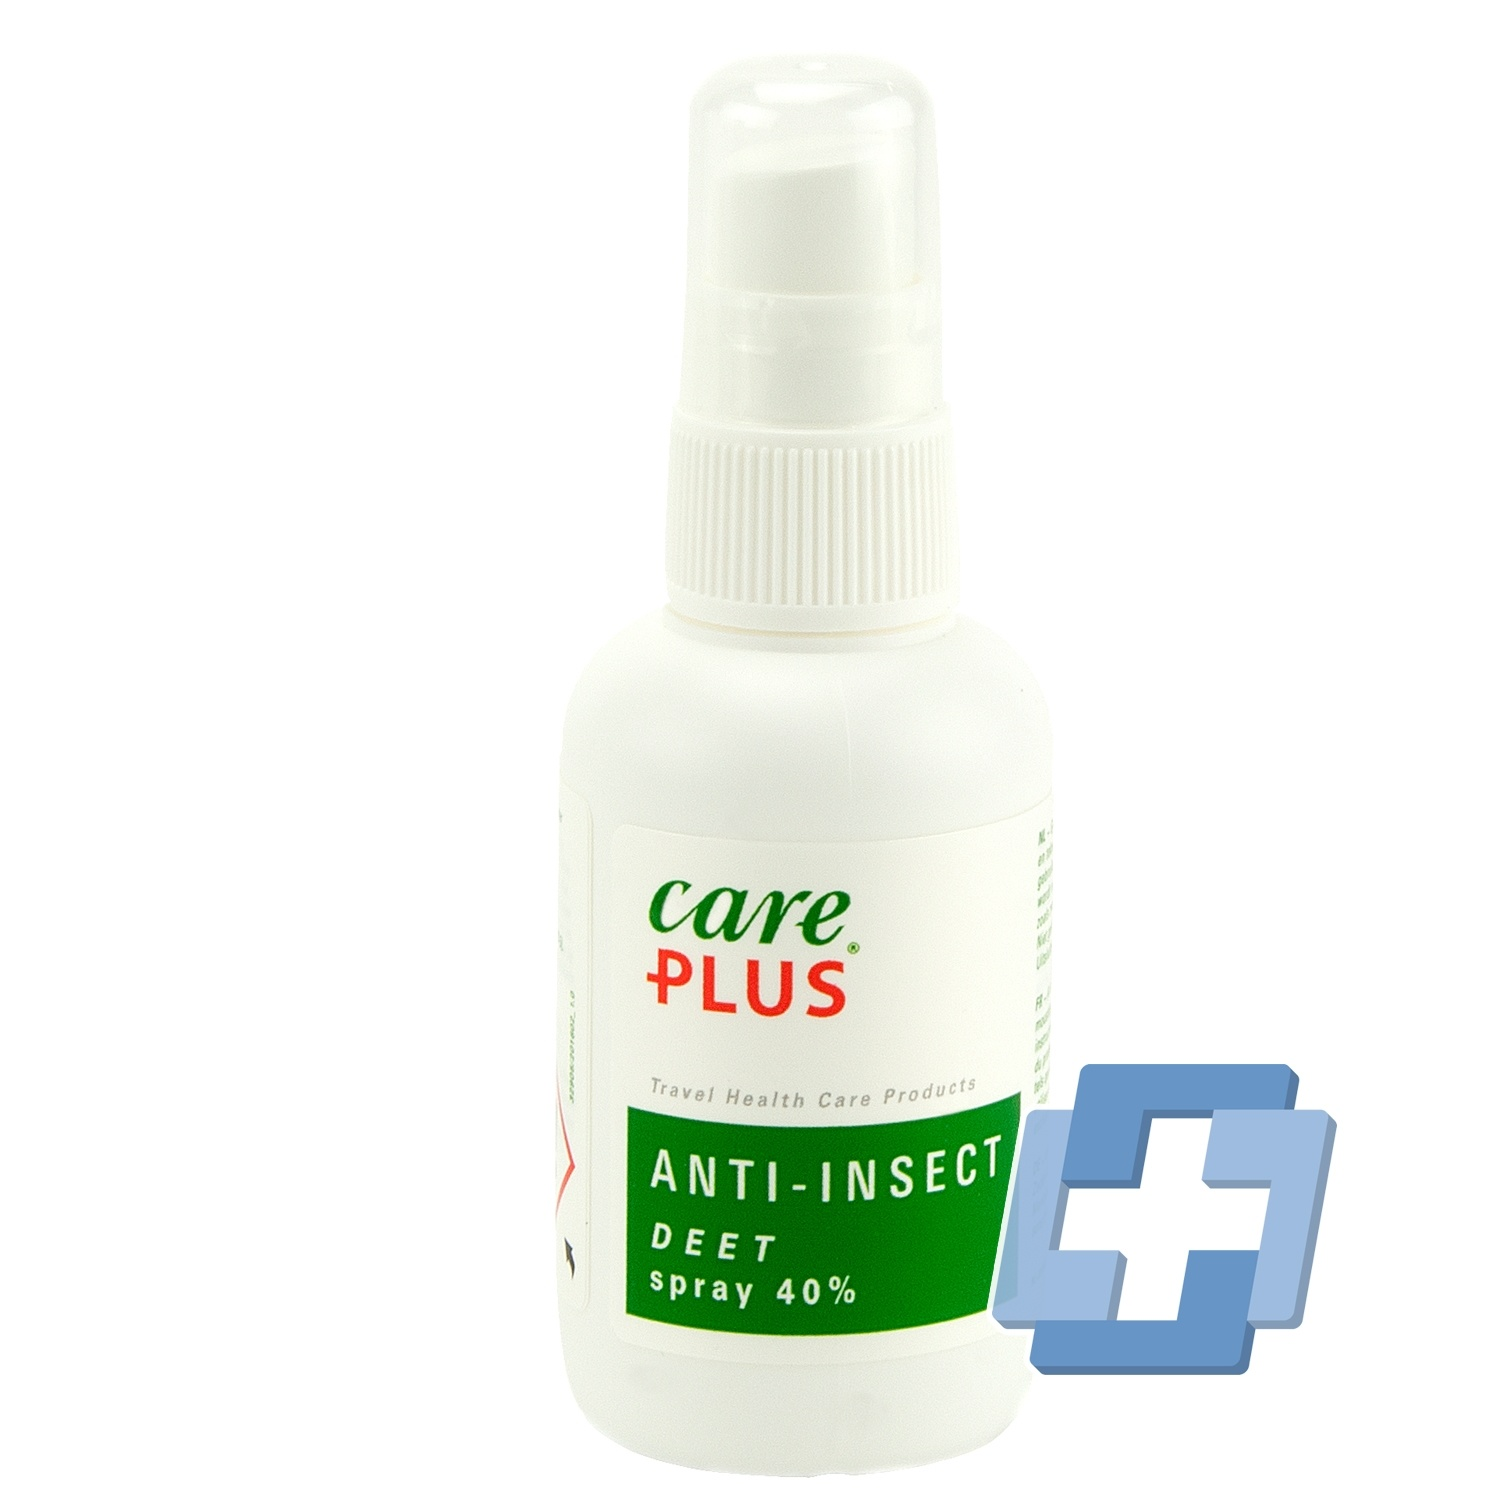 Care Plus Anti-insect deet spray 40%  - 60ml